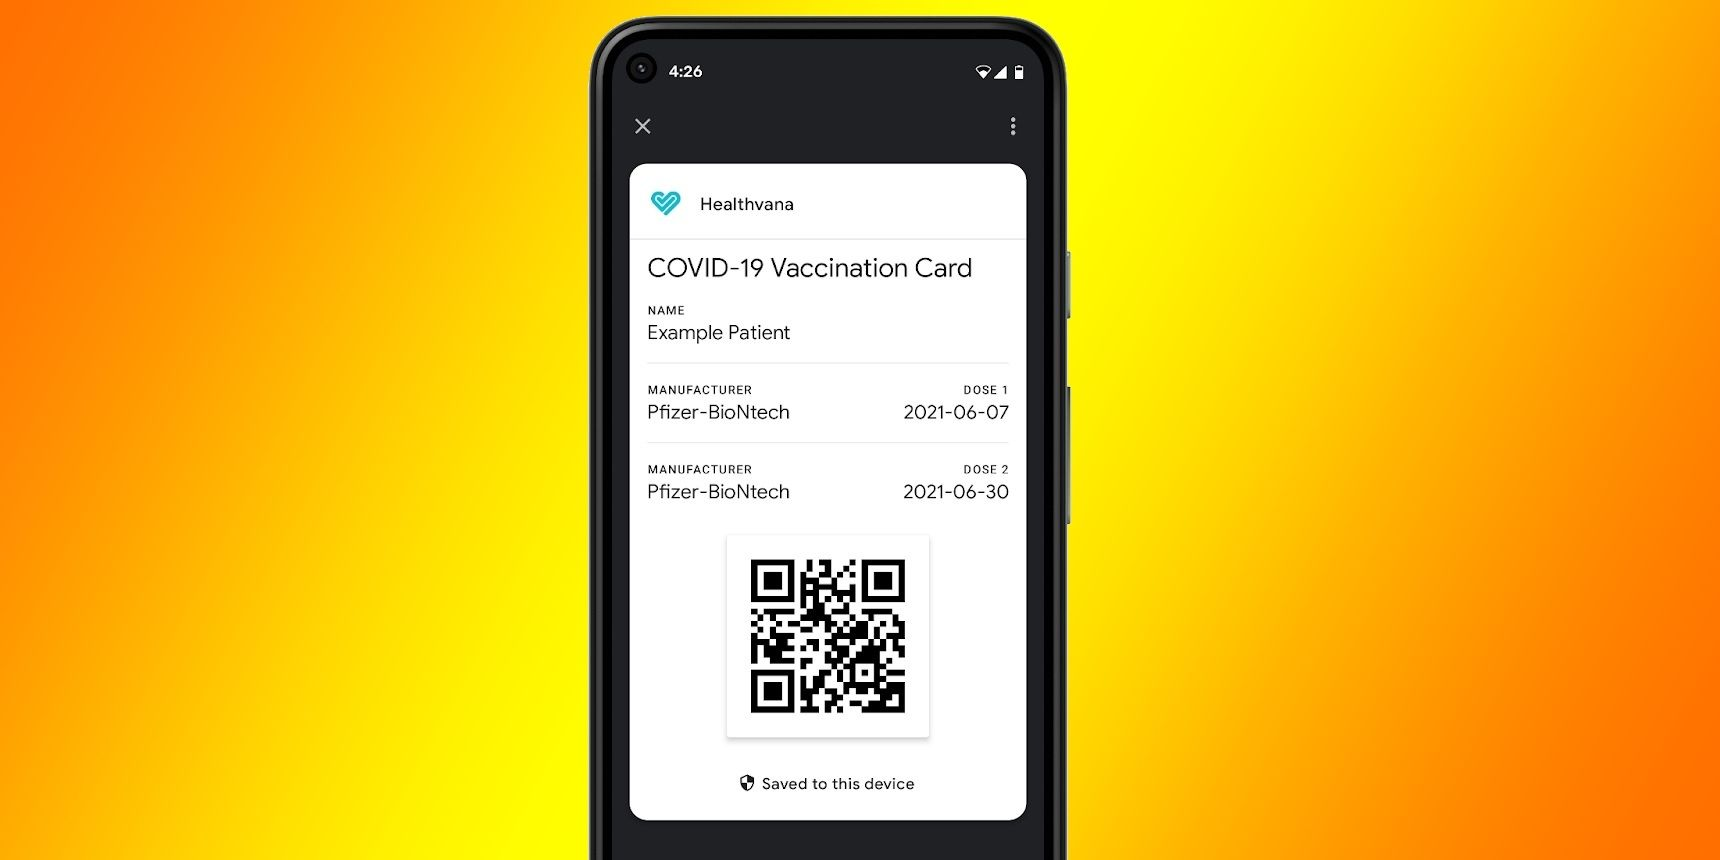 Google is making to store digital COVID-19 vaccination cards or test results on Android devices